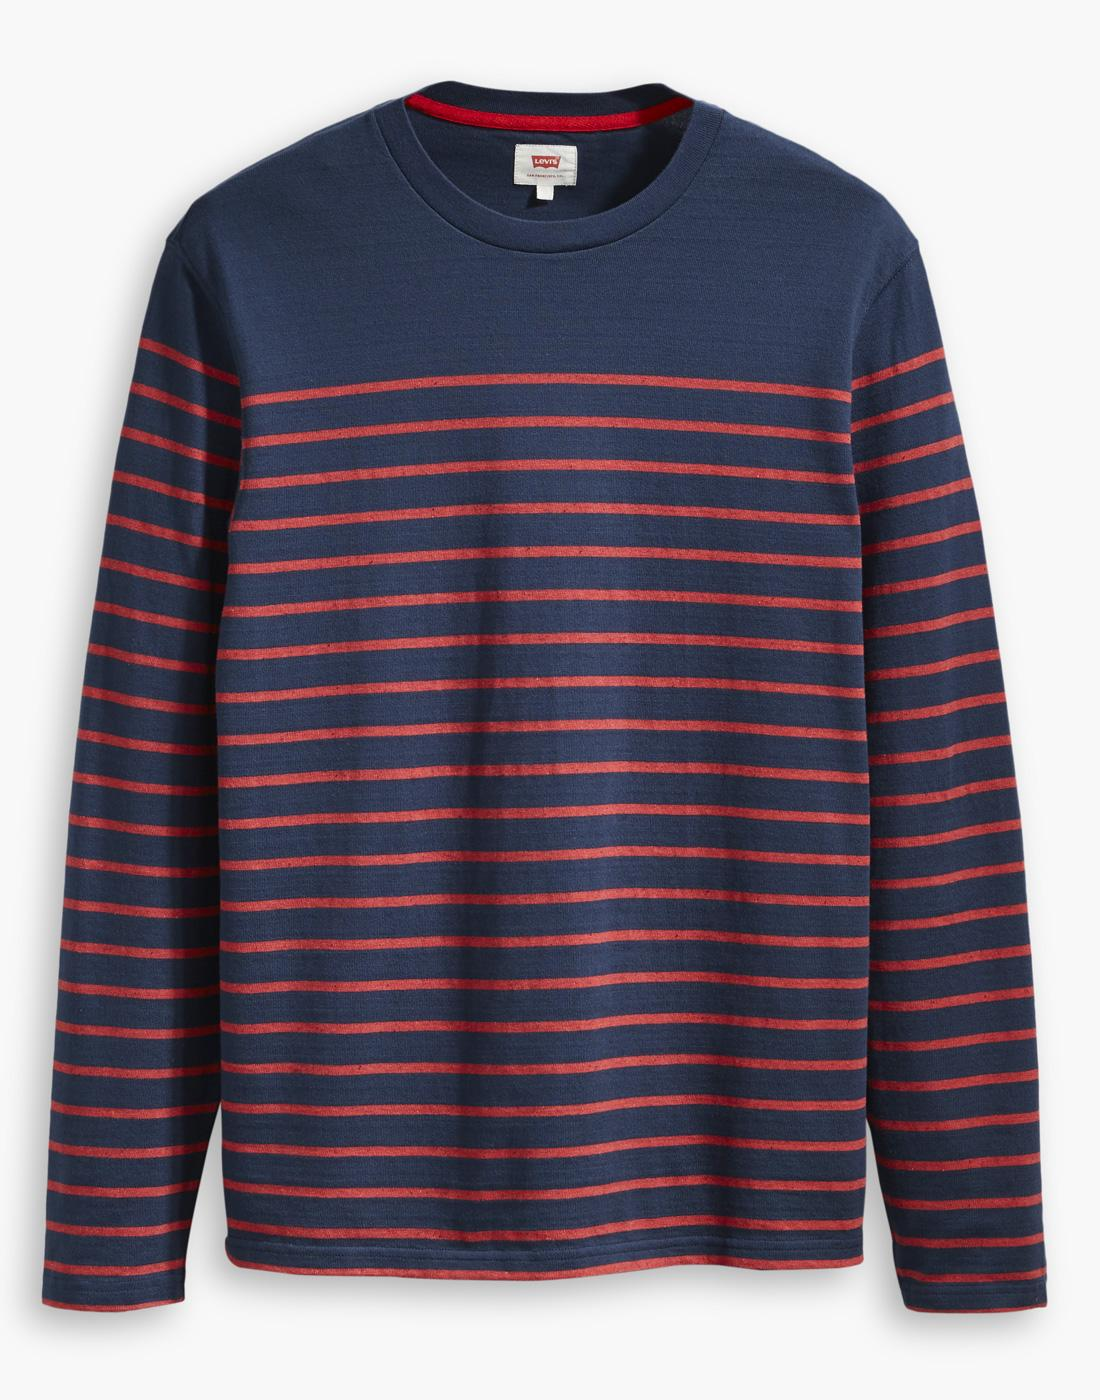 Mission LEVI'S® Men's Retro 60s Mod Breton Tee N